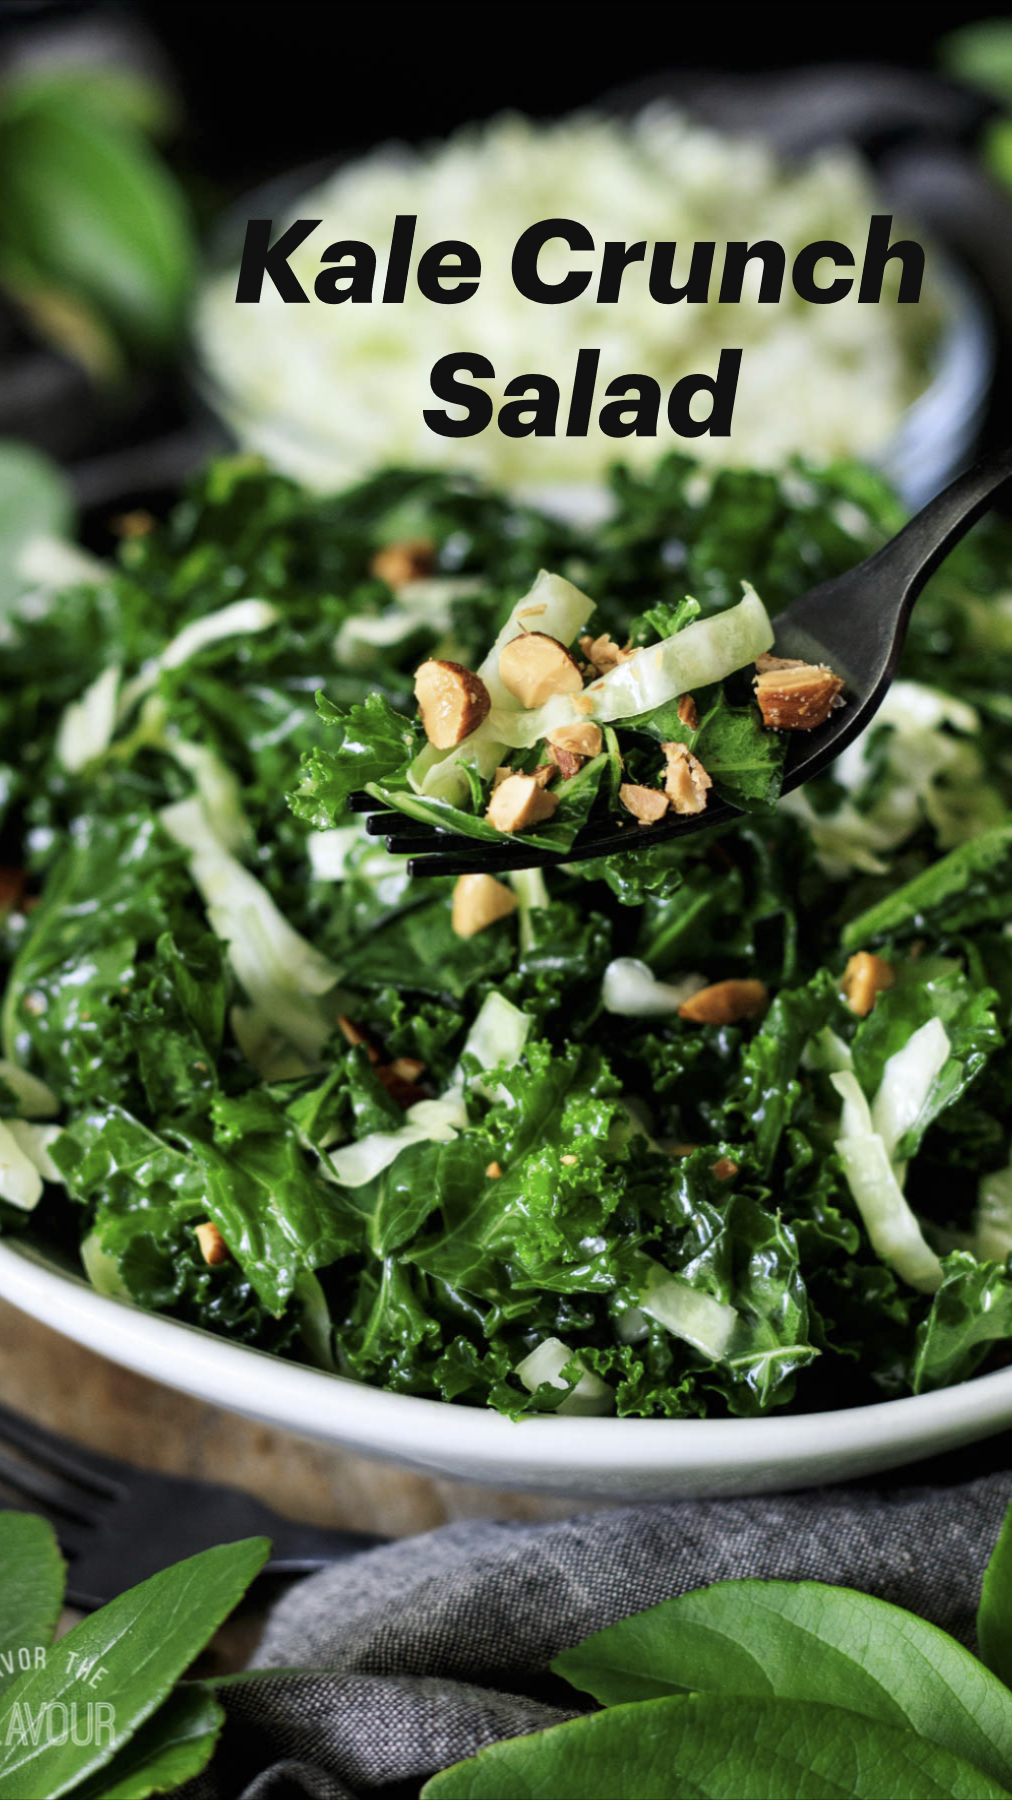 Chick-fil-A Kale Crunch Salad